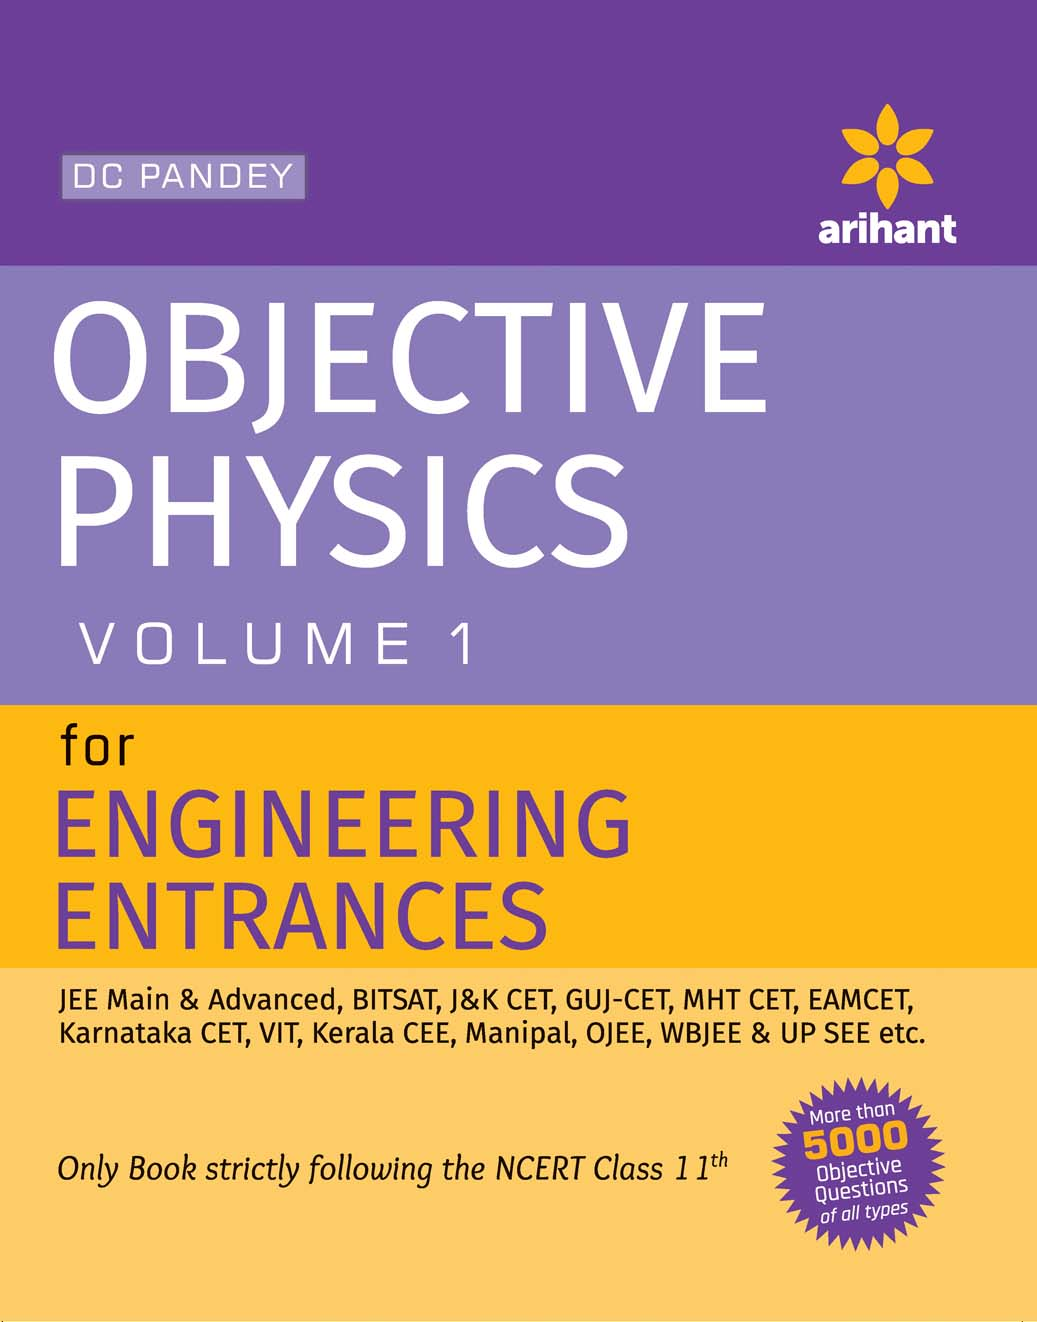 Objective Approach to Physics Vol-1 for Engineering Entrances by D C Pandey on Textnook.com